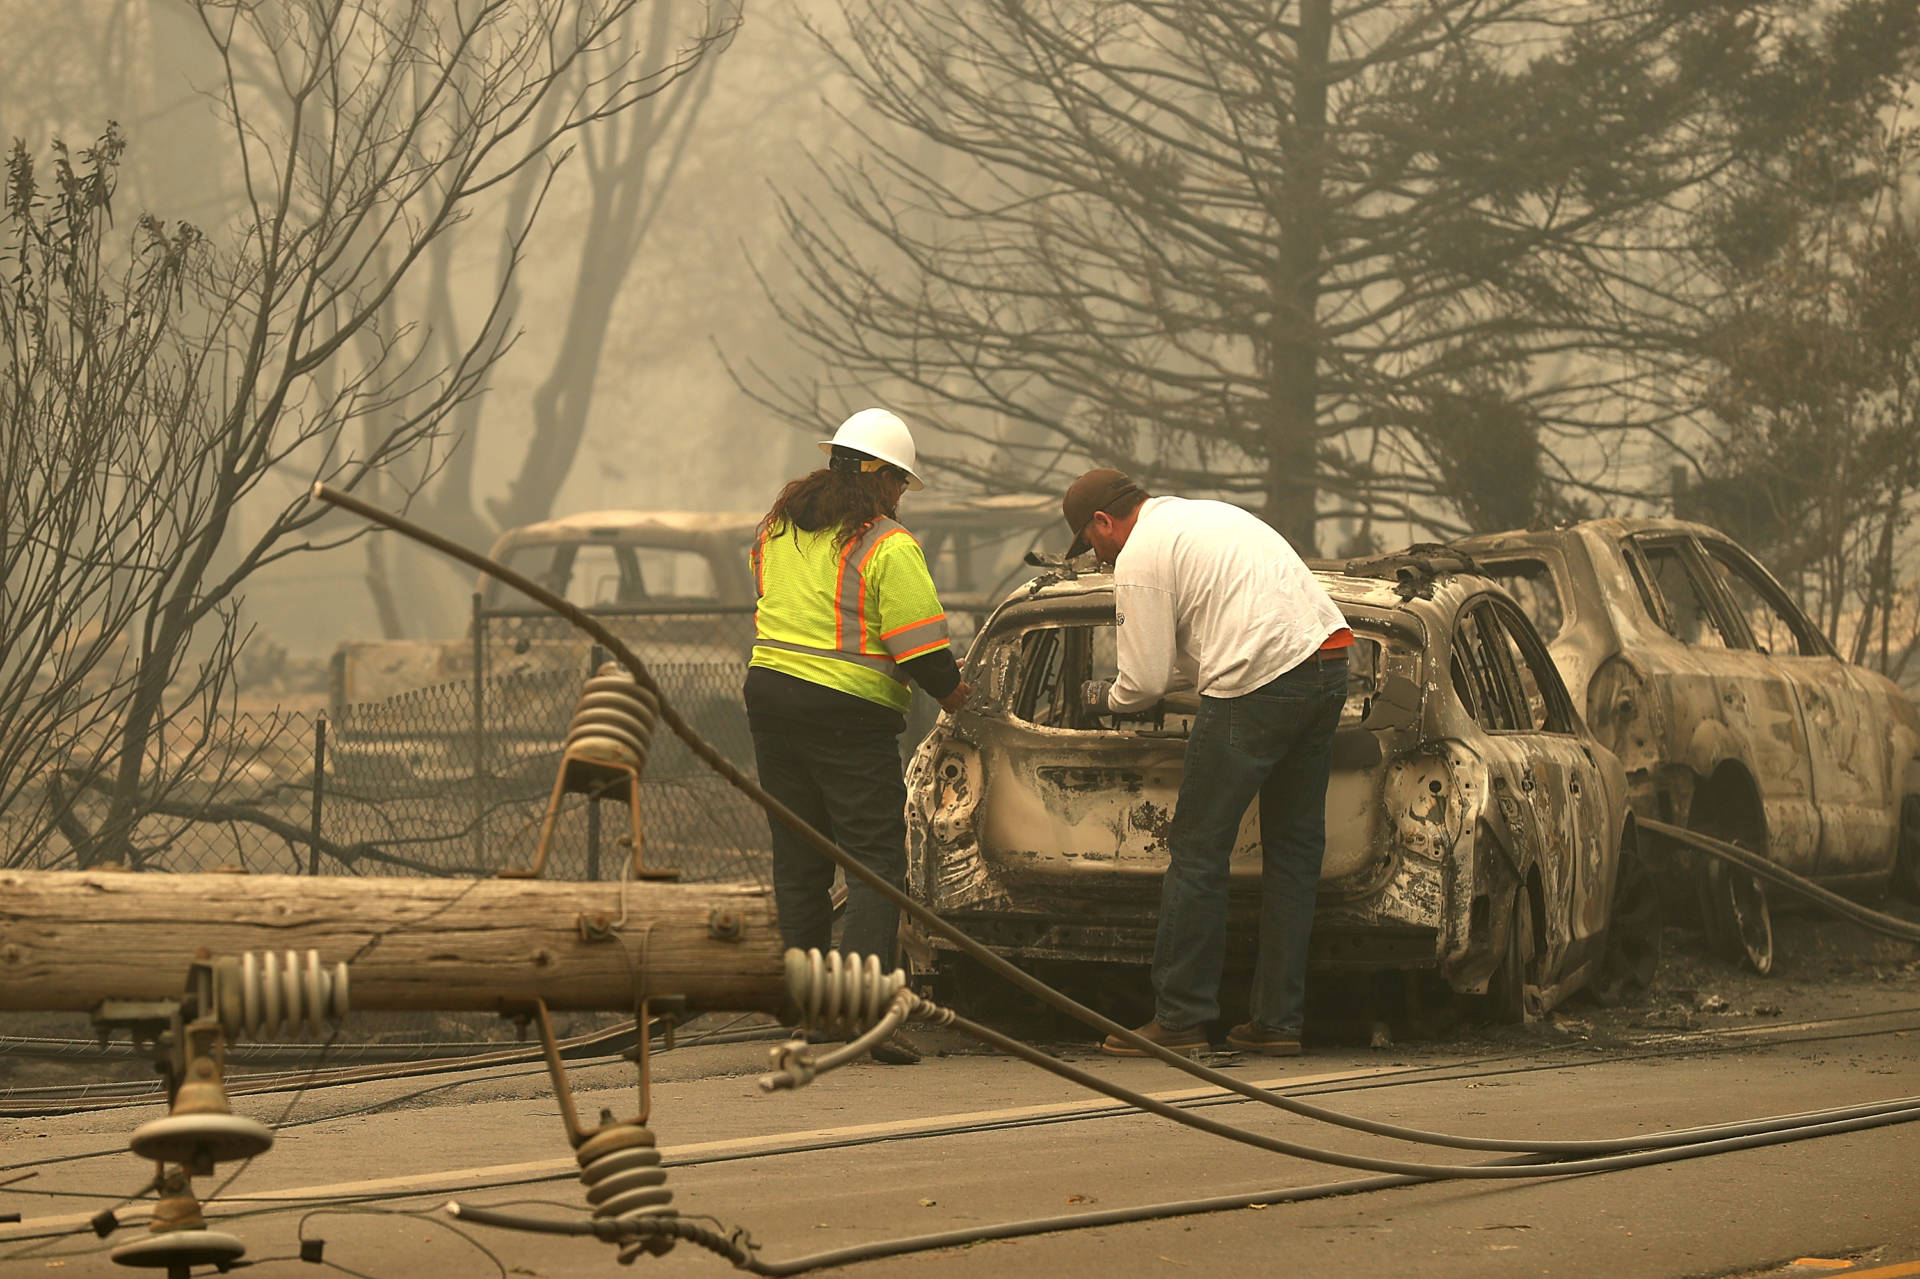 Eric England (R) looks through his friend's car that was burned by the Camp Fire on November 10, 2018, in Paradise, California. Before the filing, PG&E sought to assure the public that it would continue making safety investments in an attempt to avoid future catastrophic wildfires. Justin Sullivan/Getty Images